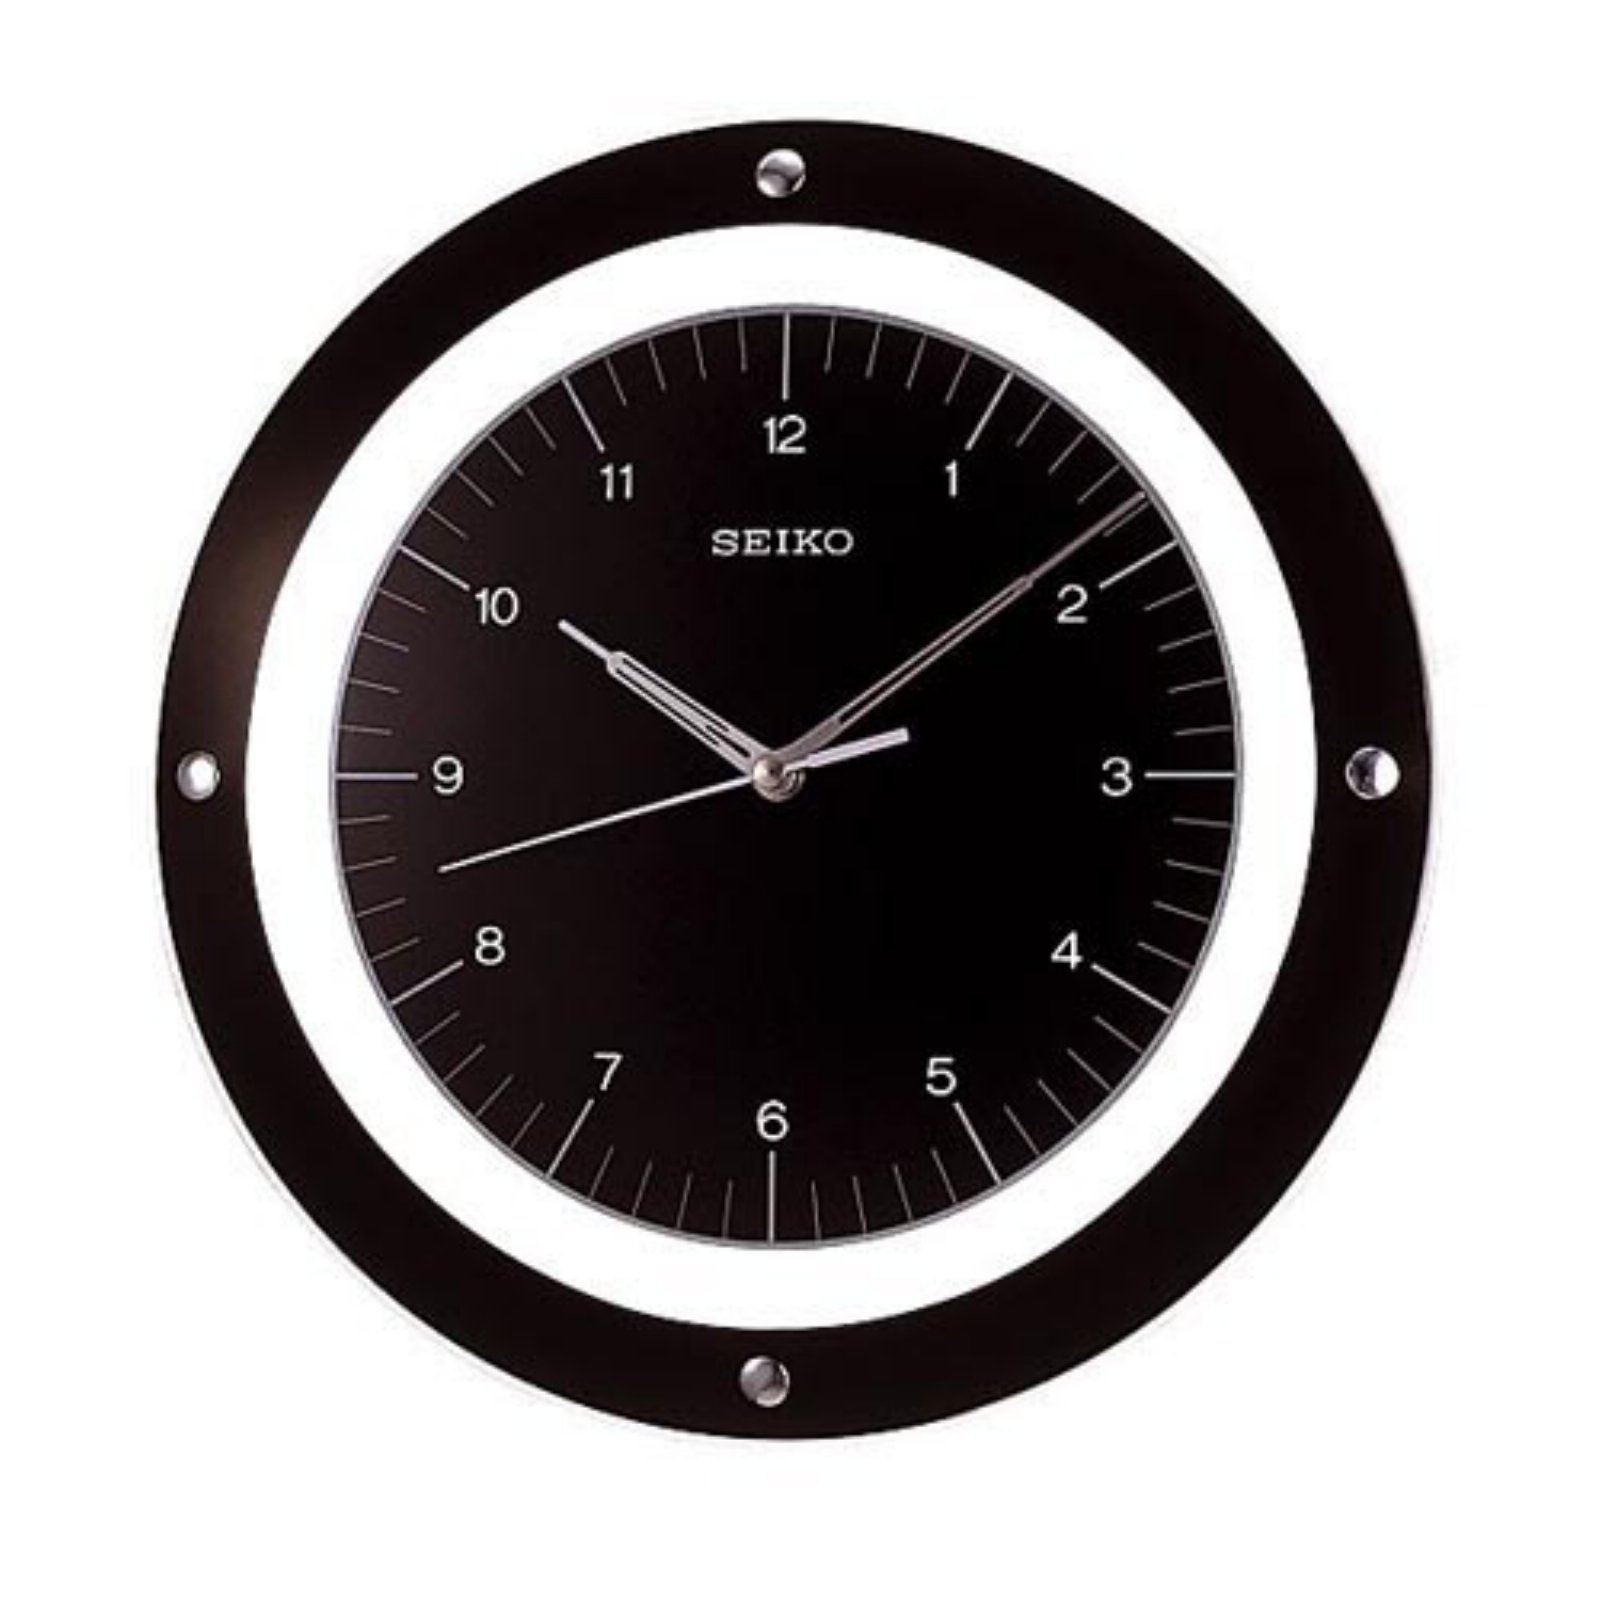 Seiko Black Quiet Sweep Floating 12.6 Inch Wall Clock